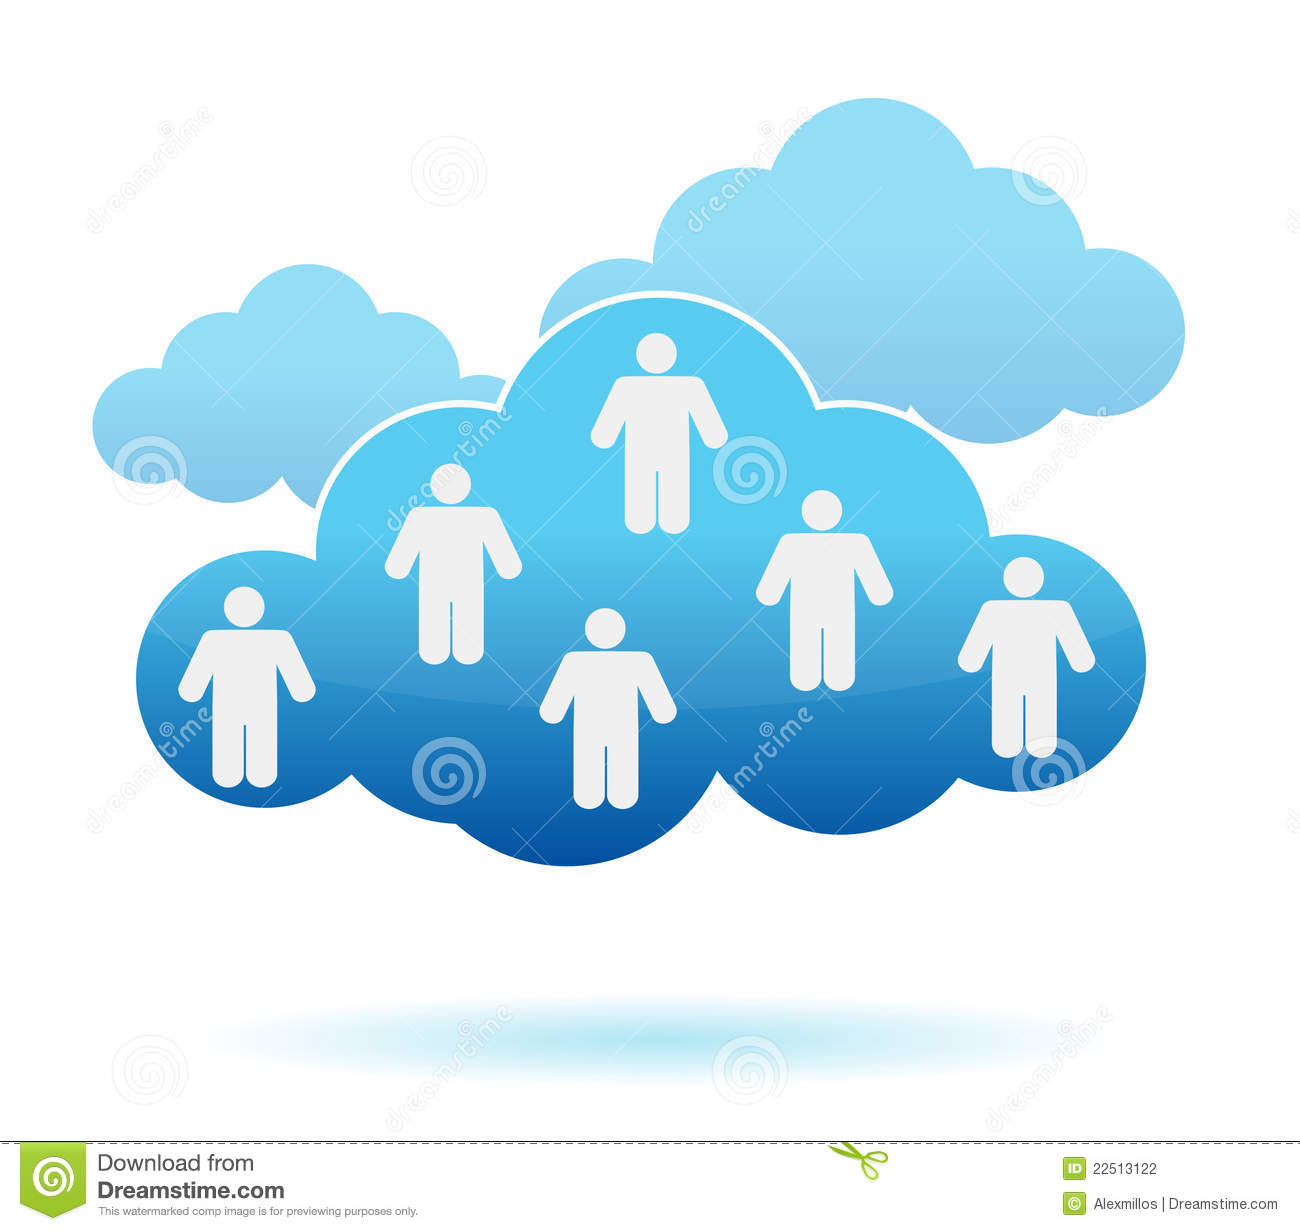 Networking Cloud Computing: Cloud Computing Concept. Social Networking Stock